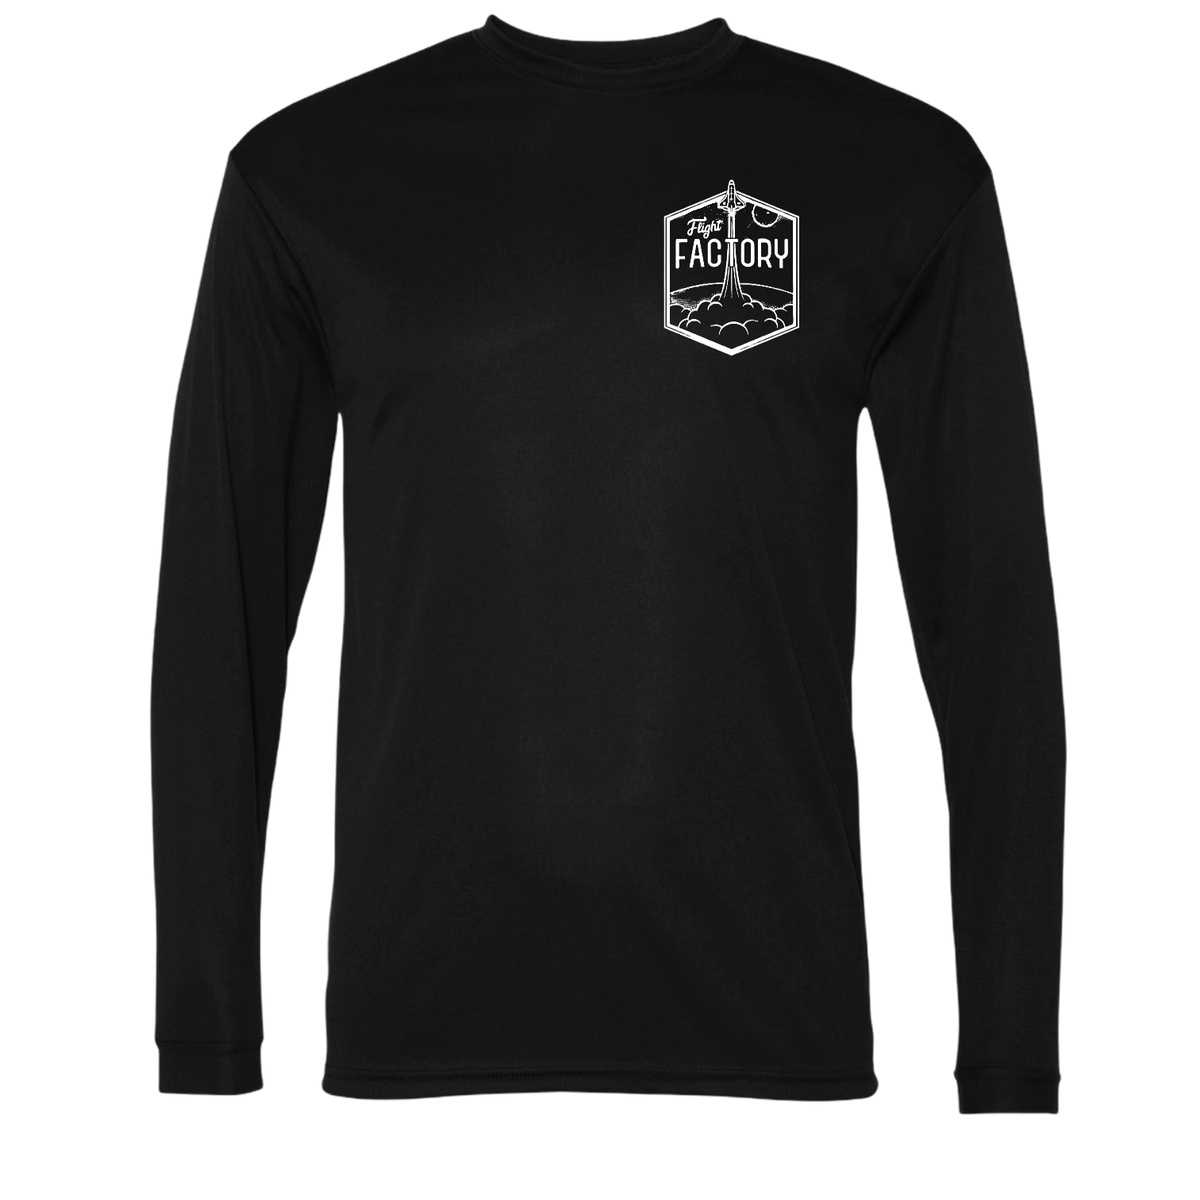 Flight Factory Small Blast Off Performance Long Sleeve Dri-Fit Shirt